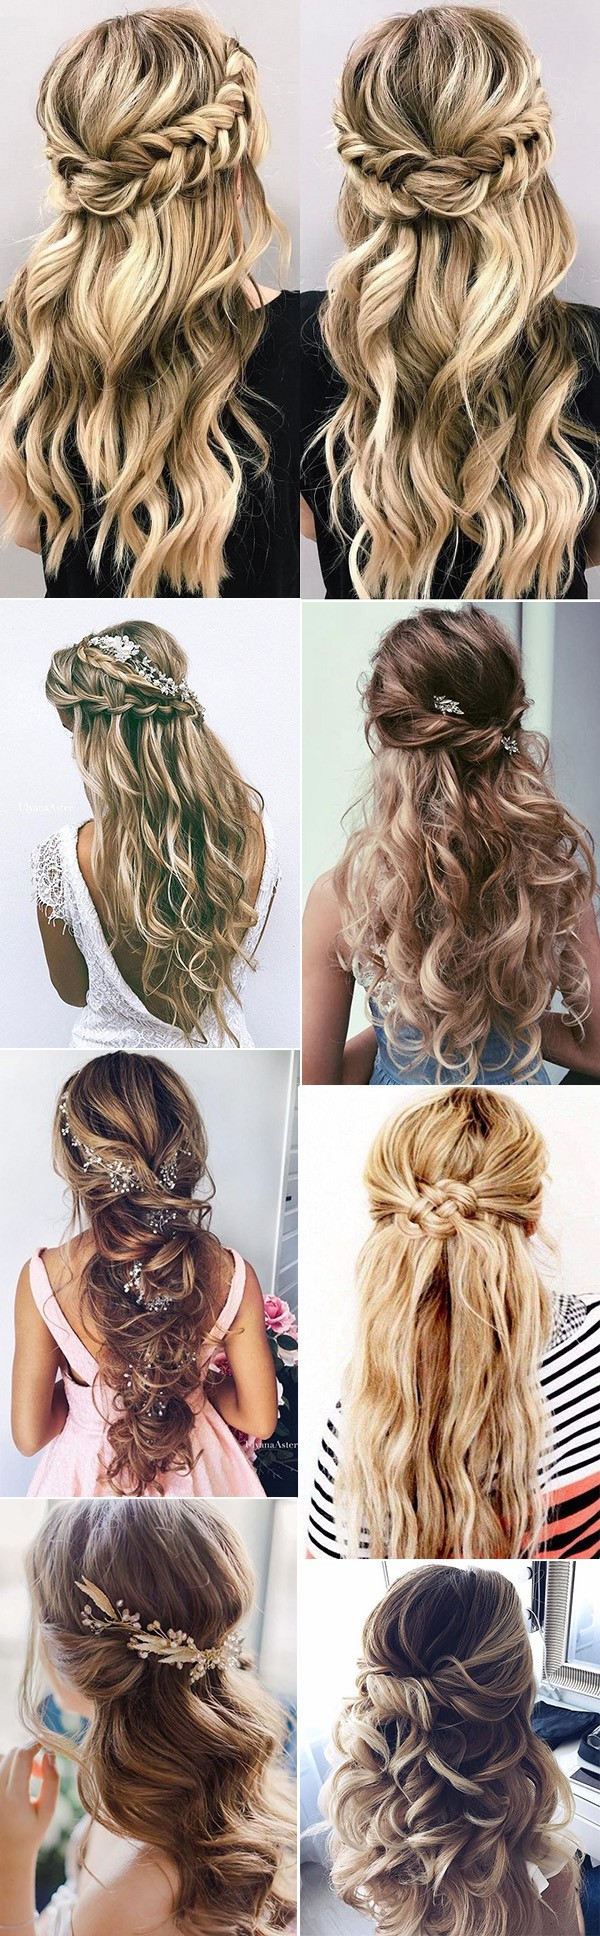 15 chic half up half down wedding hairstyles for long hair chic half up half down wedding hairstyles ideas junglespirit Images